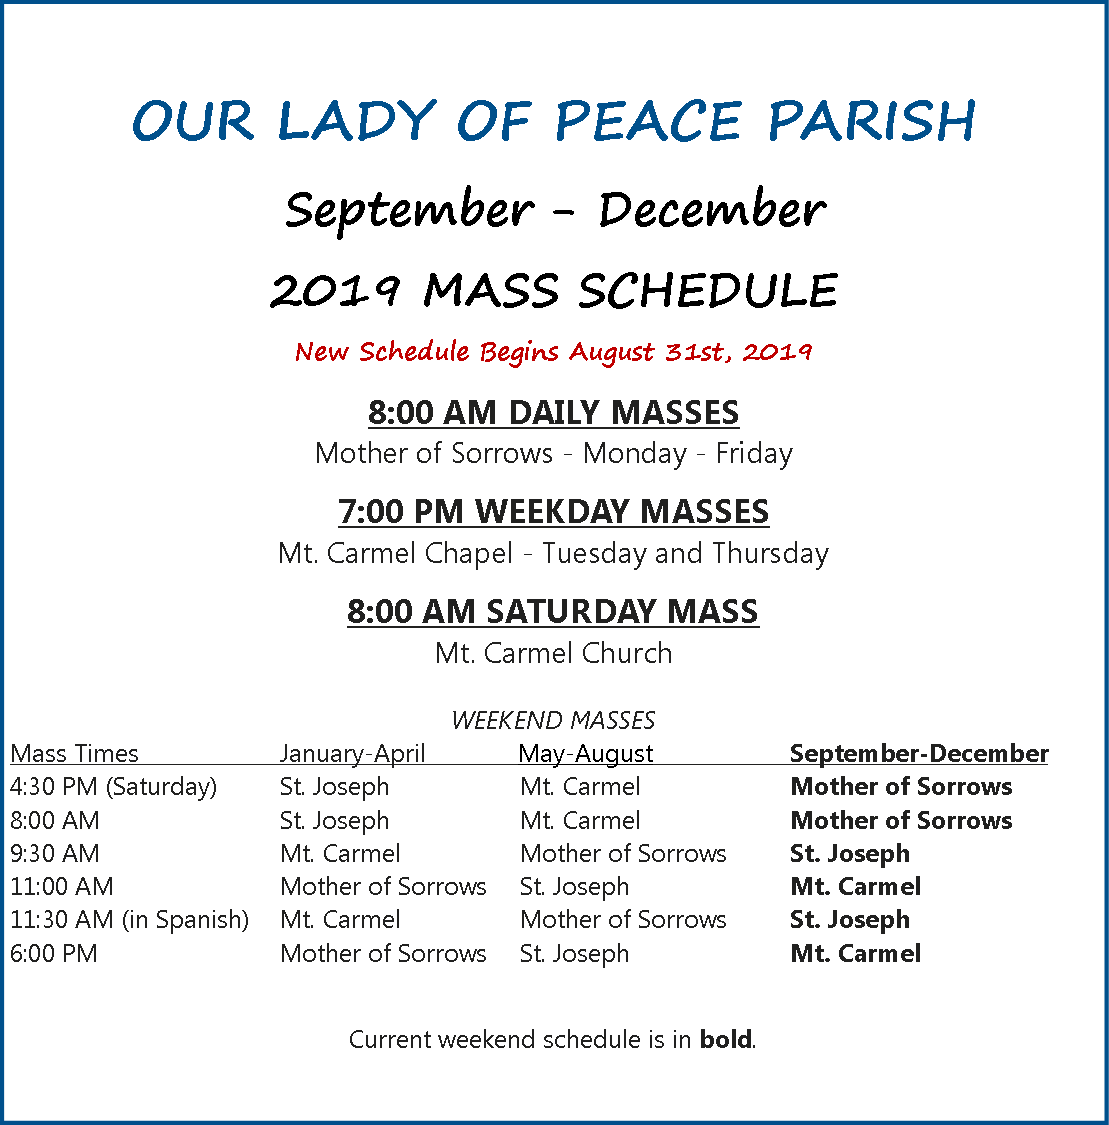 September - December 2019 Mass Schedule